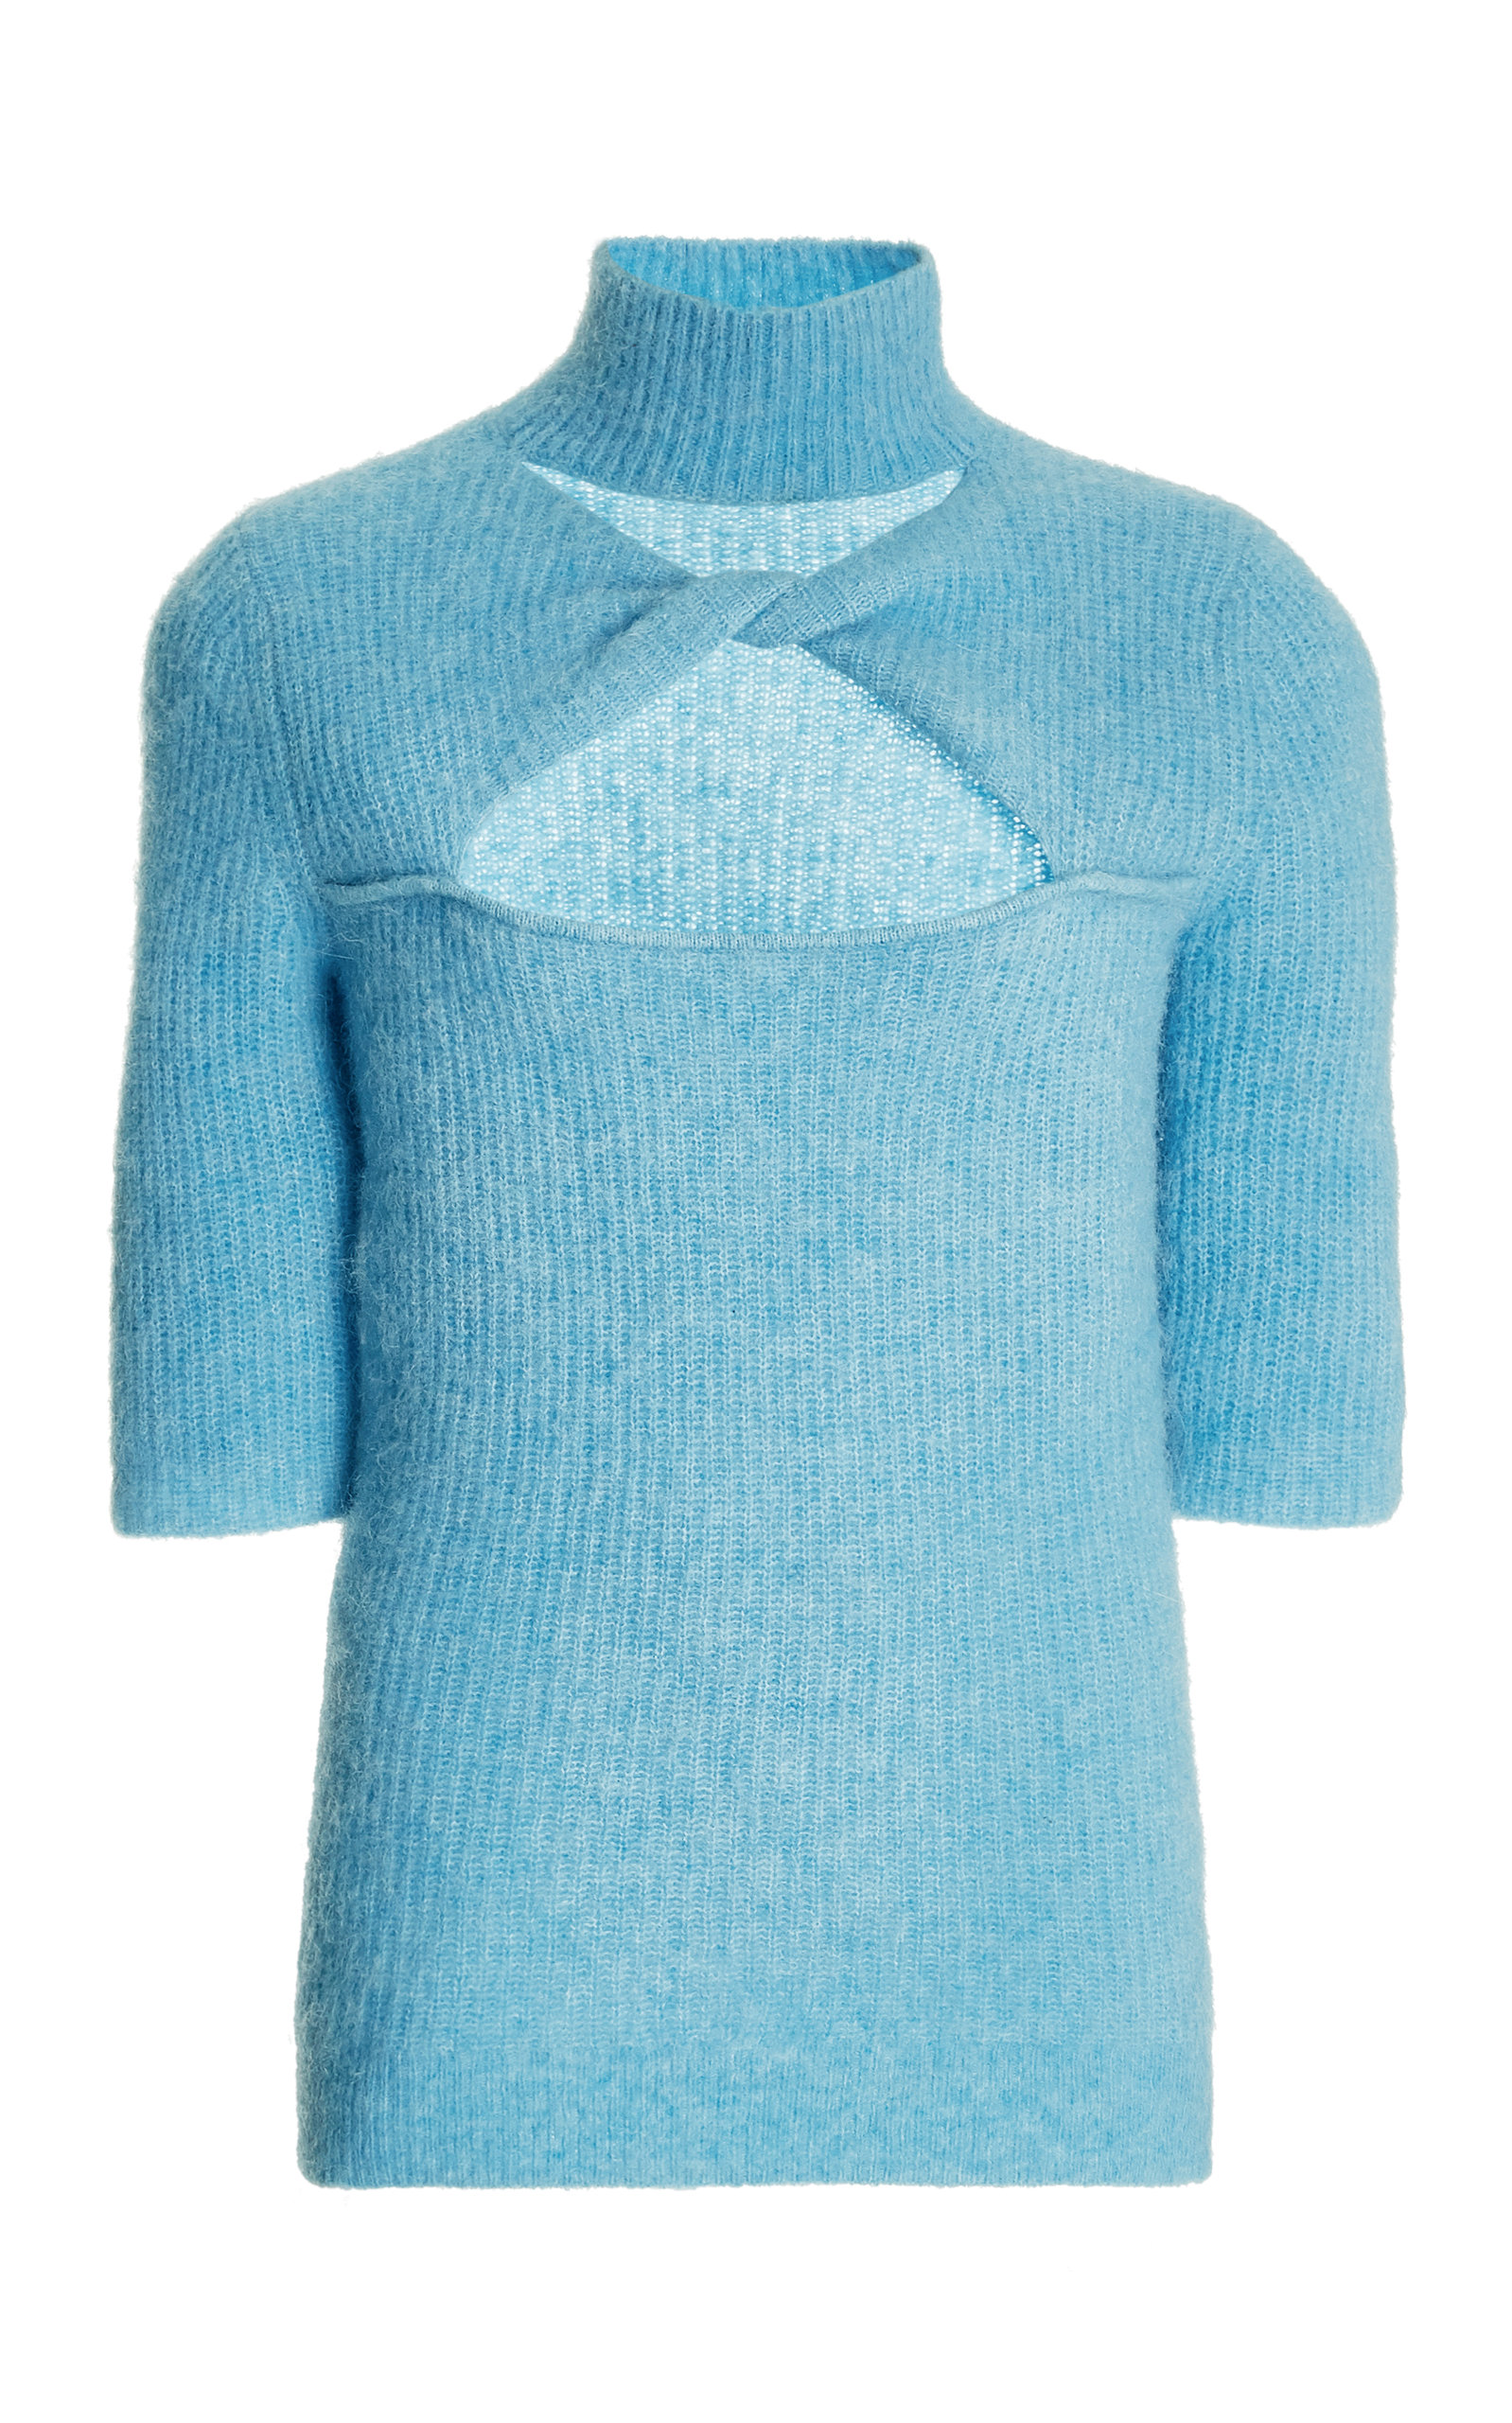 Ganni Wools WOMEN'S CUTOUT KNOTTED KNIT TOP